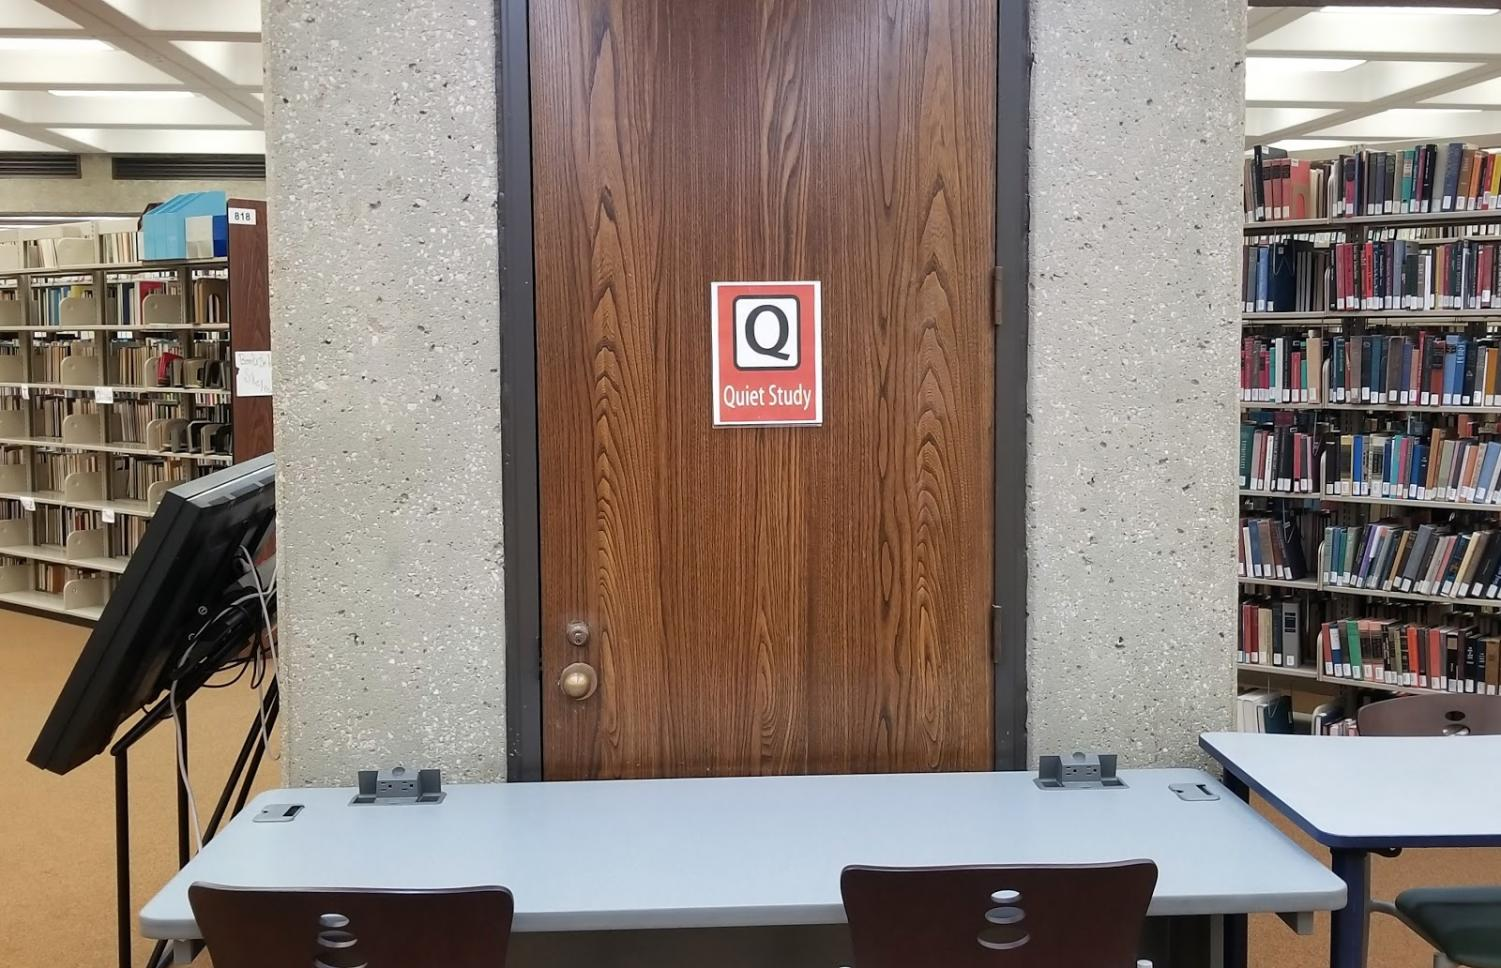 A sign on the third floor of Bierce showing the area is reserved for students to study in a quiet environment.